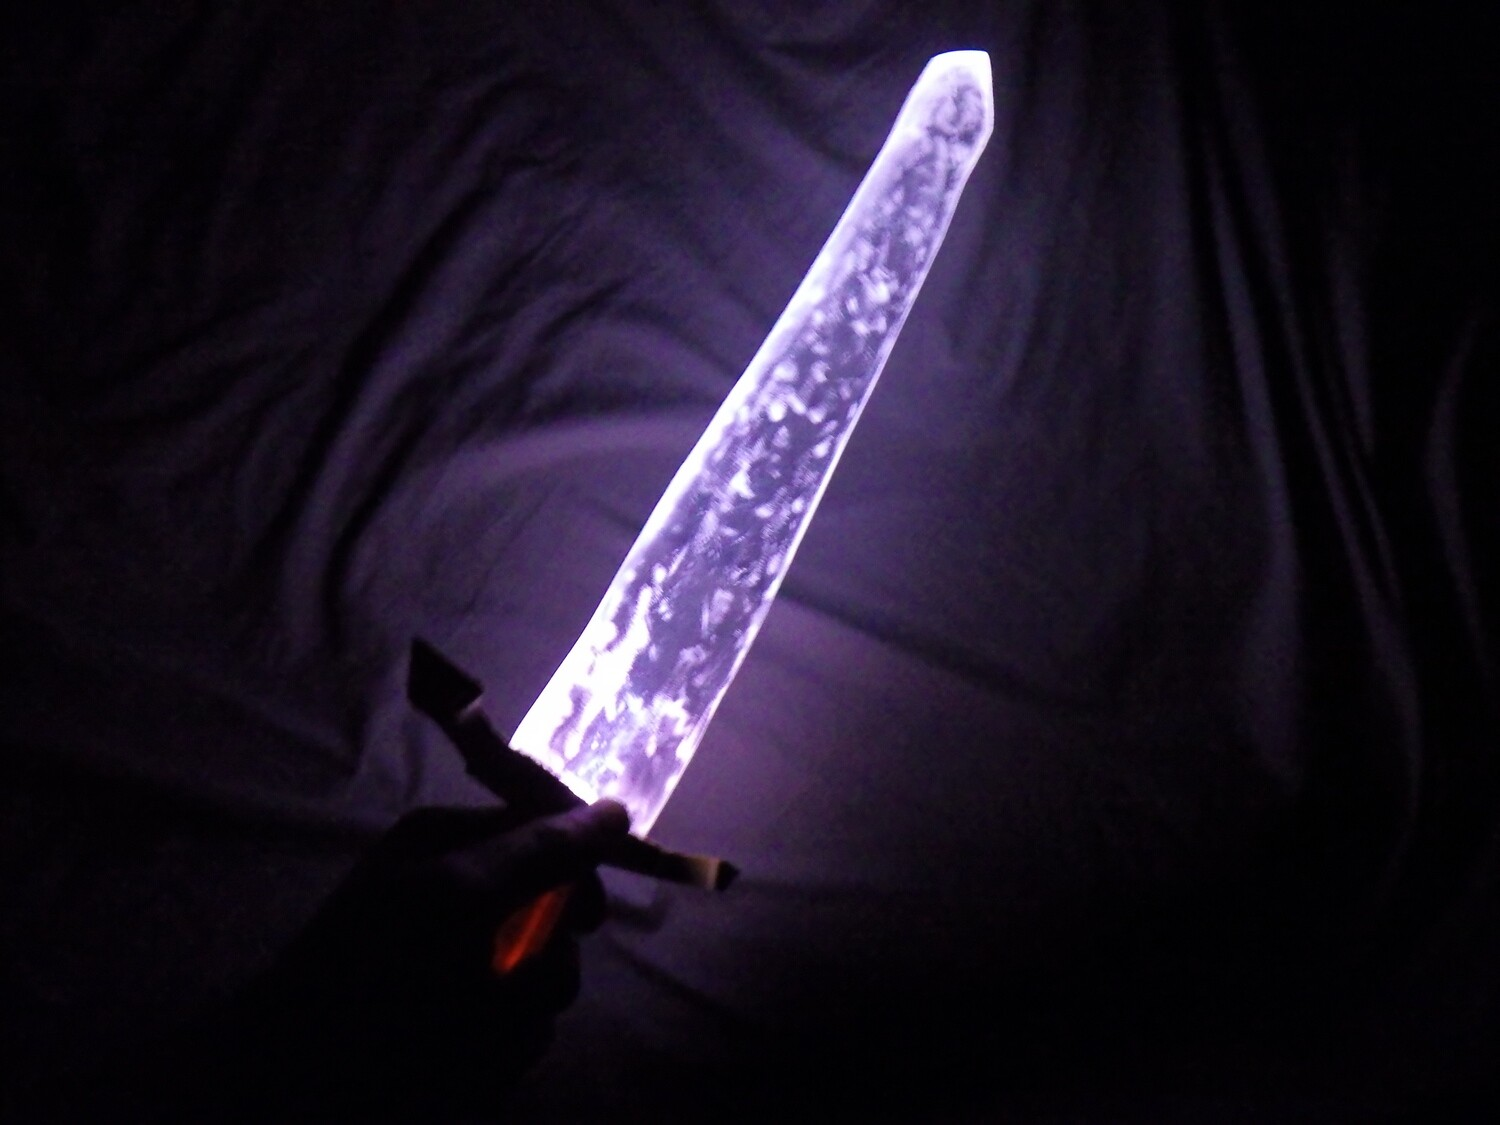 """Light-Up 21.5"""" x 2.5"""" x .5"""" Thick Crystal Glass Ice Replica Fantasy Theater Movie LARP Cosplay Prop RPG"""